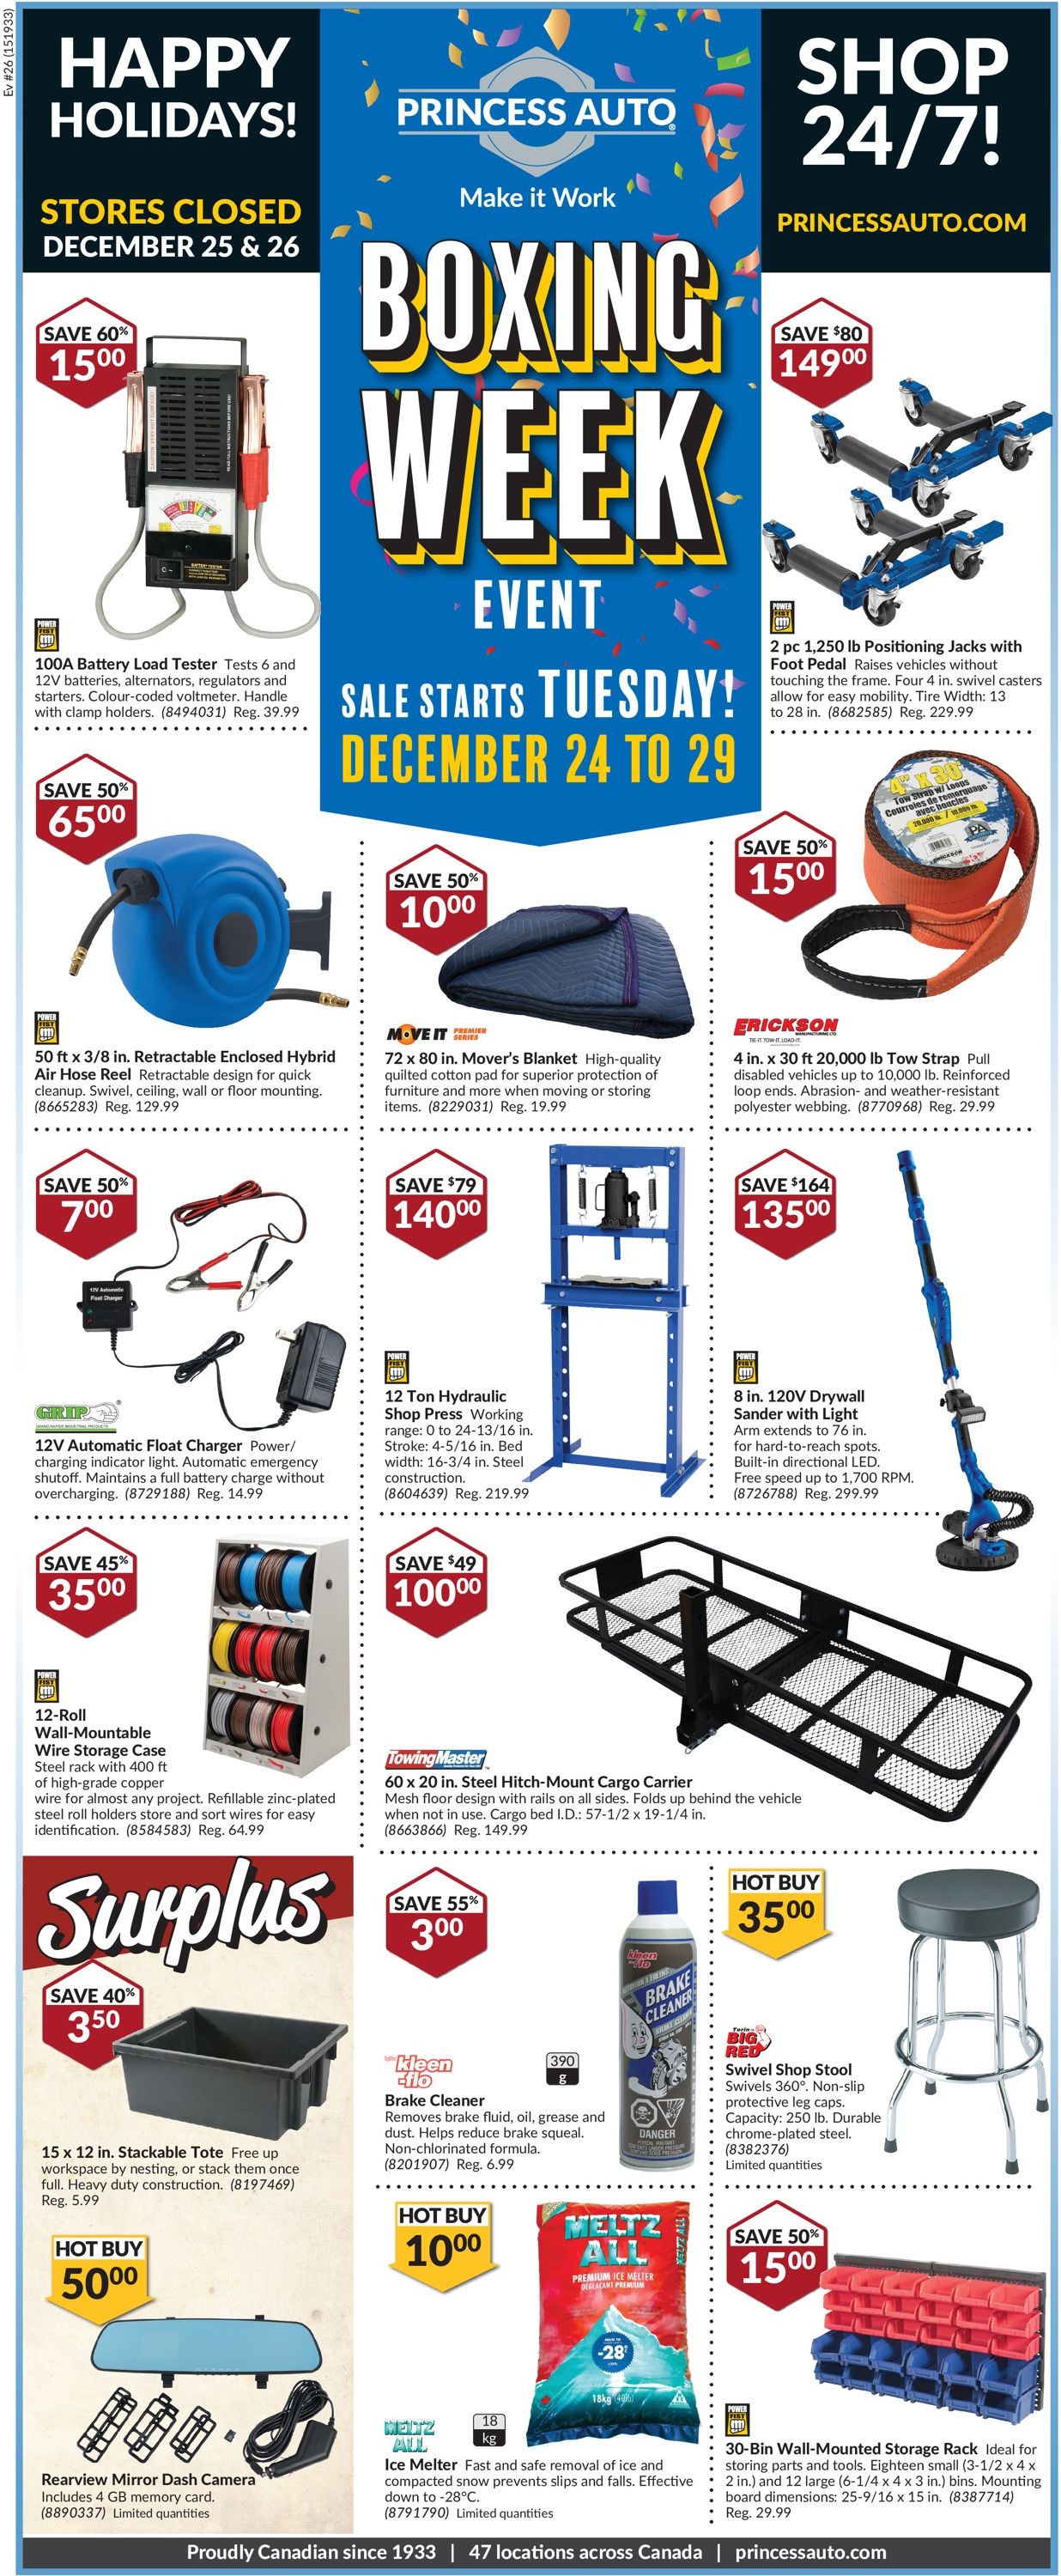 Princess Auto - Boxing Week DEALS Flyer - 12/24-12/29/2019